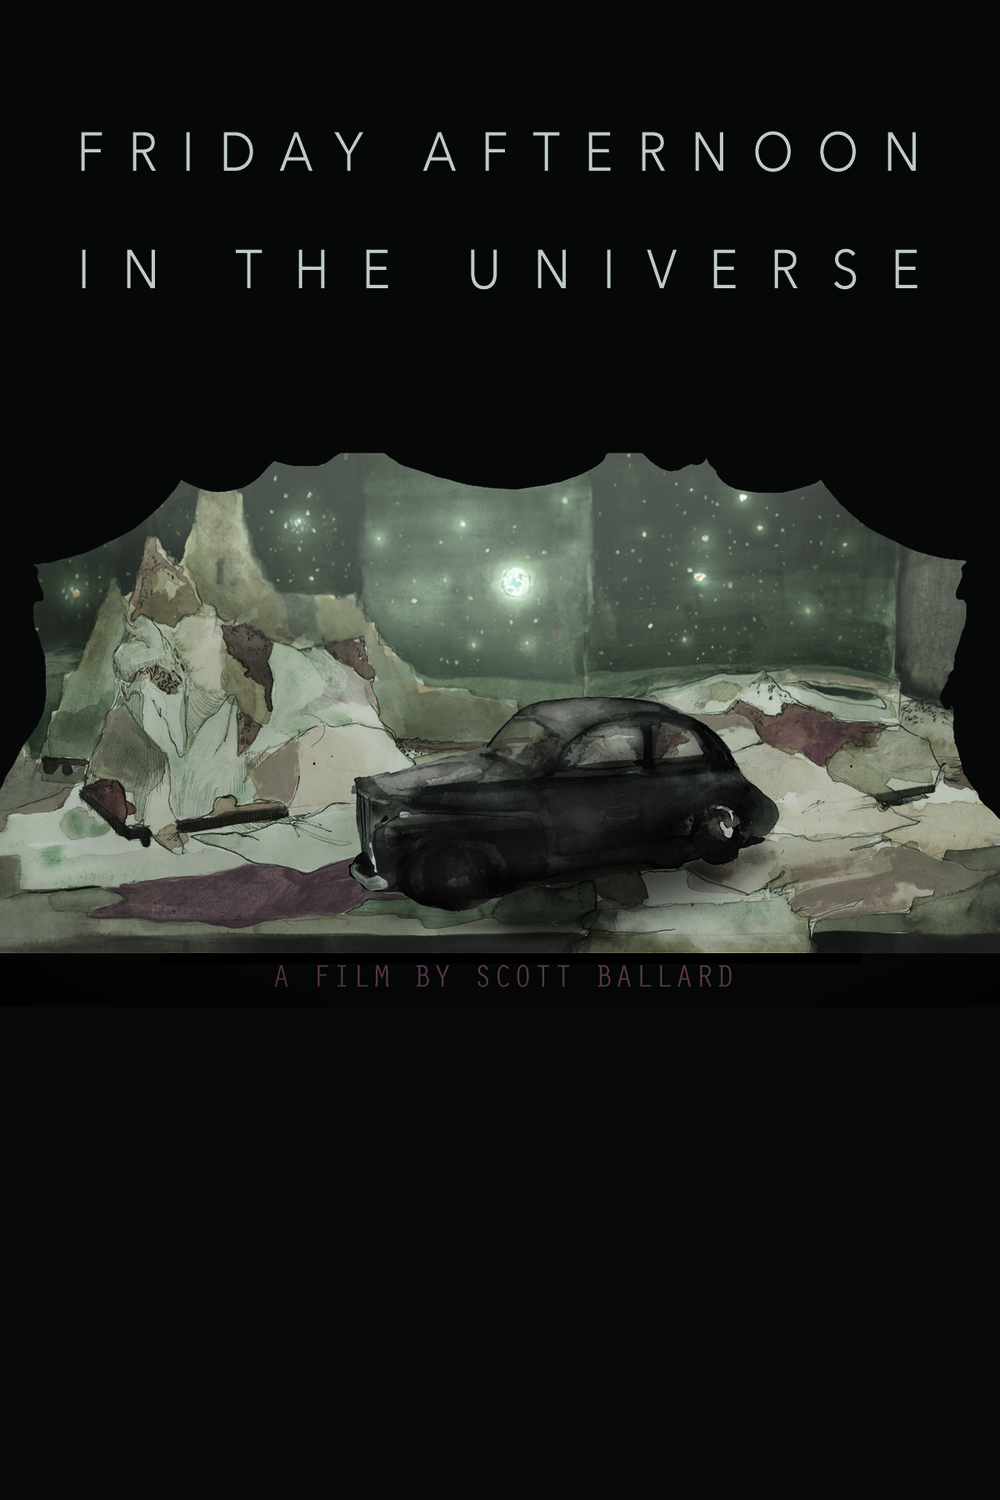 Friday Afternoon In The Universe - Currently in pre-production